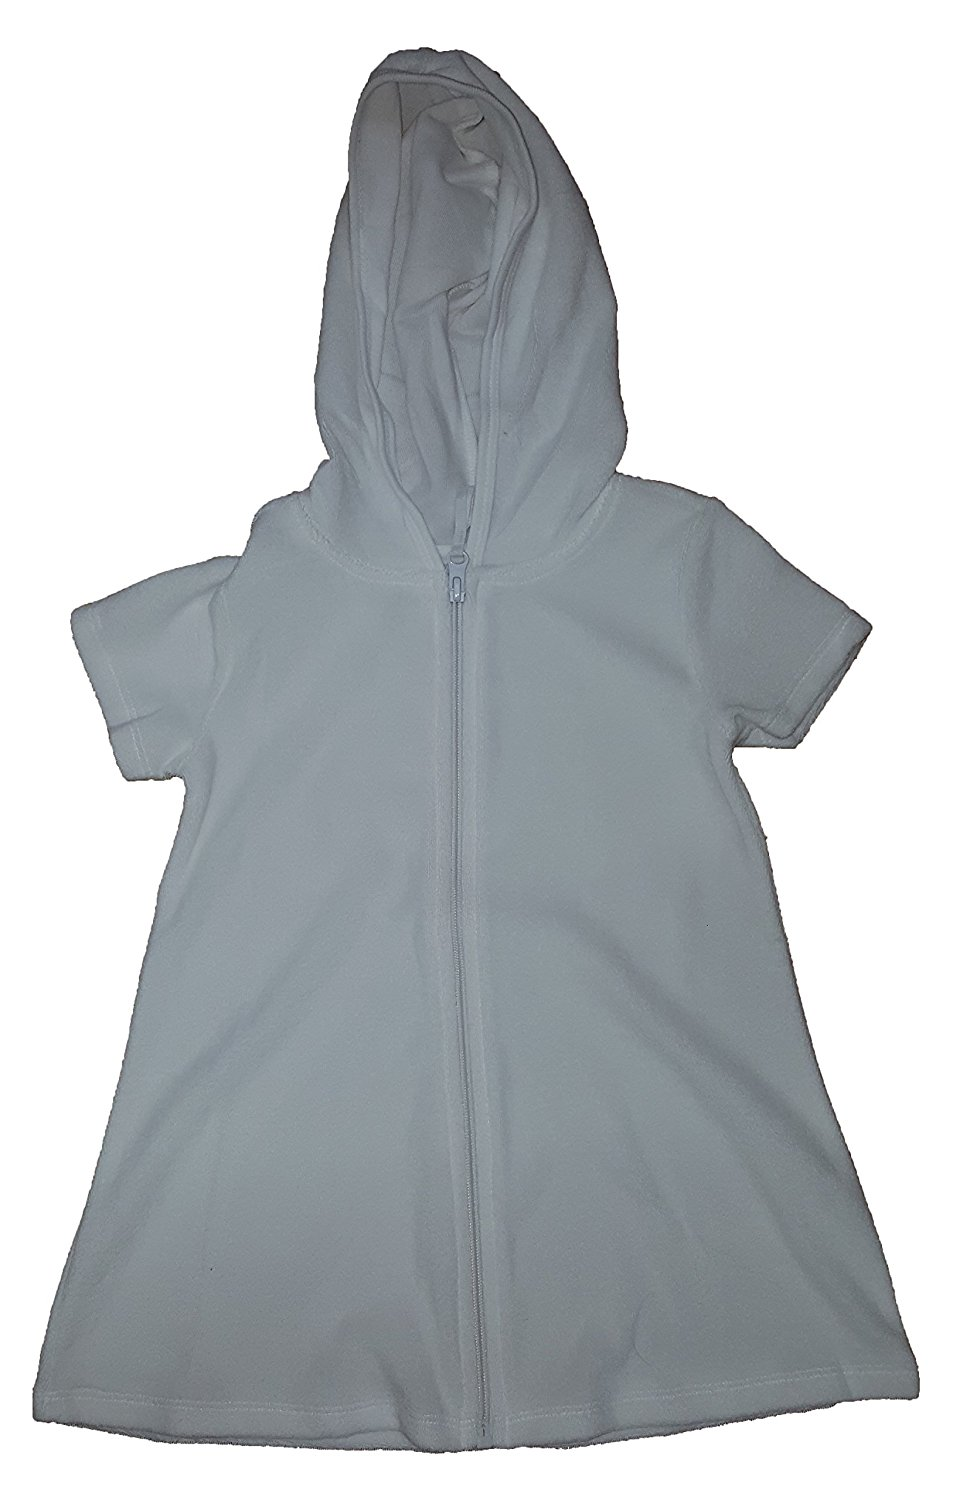 a0f1bd1d8a Get Quotations · OP Girls Terry Hooded Swimsuit Cover up